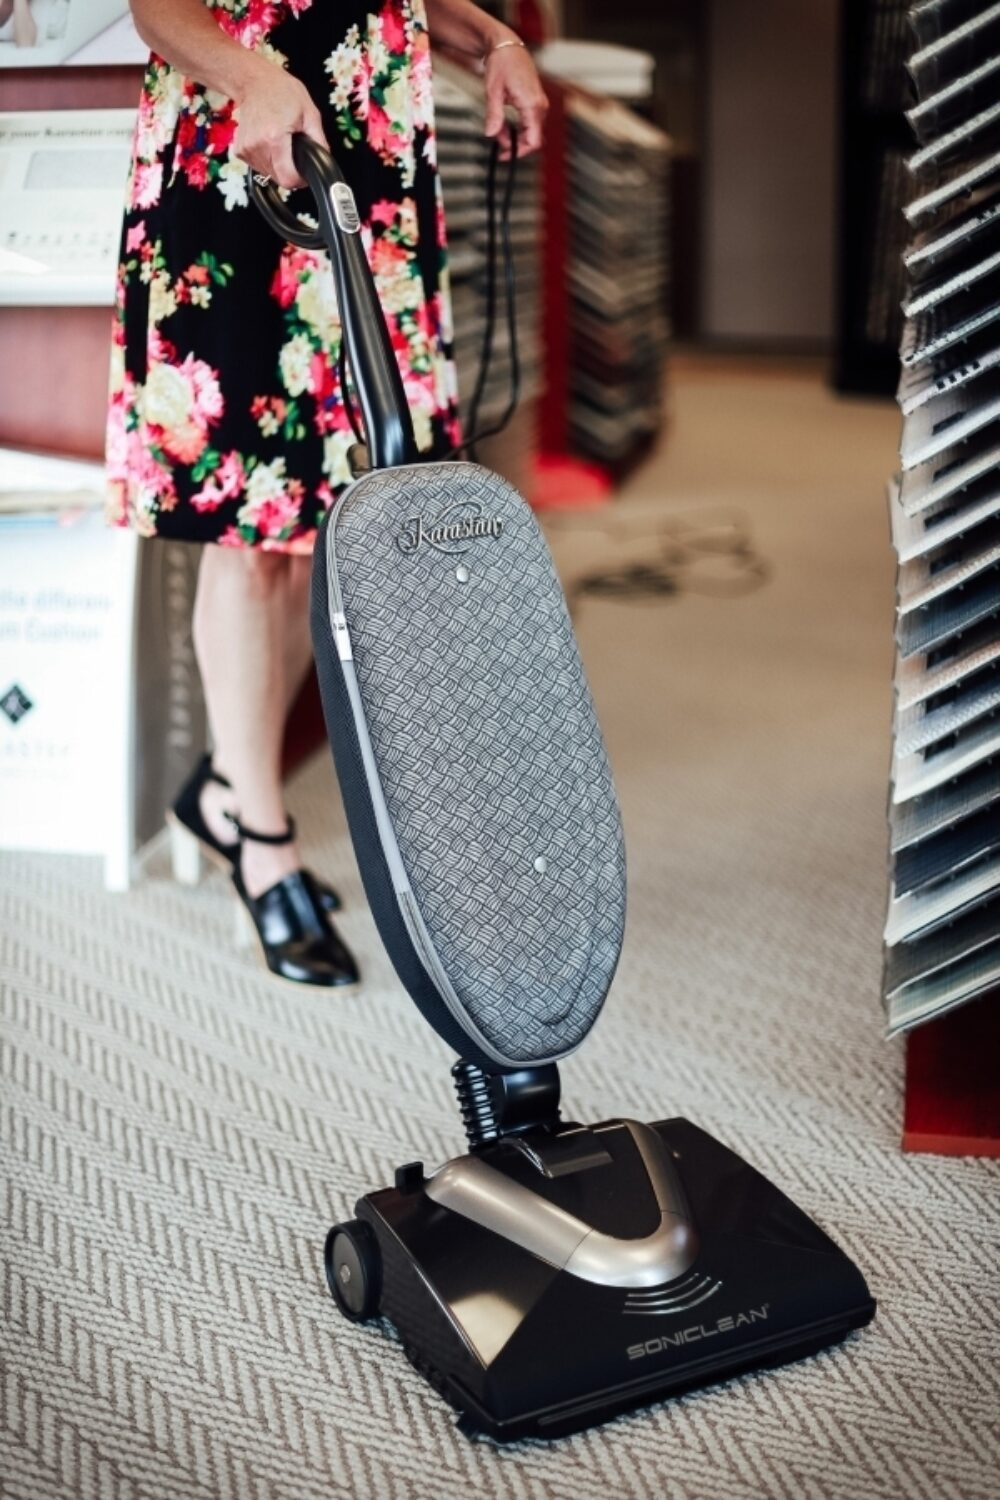 An image of a woman in a floral dress using the Karastan Soniclean vacuum on a woven look carpet. There are carpet display stands behind her.